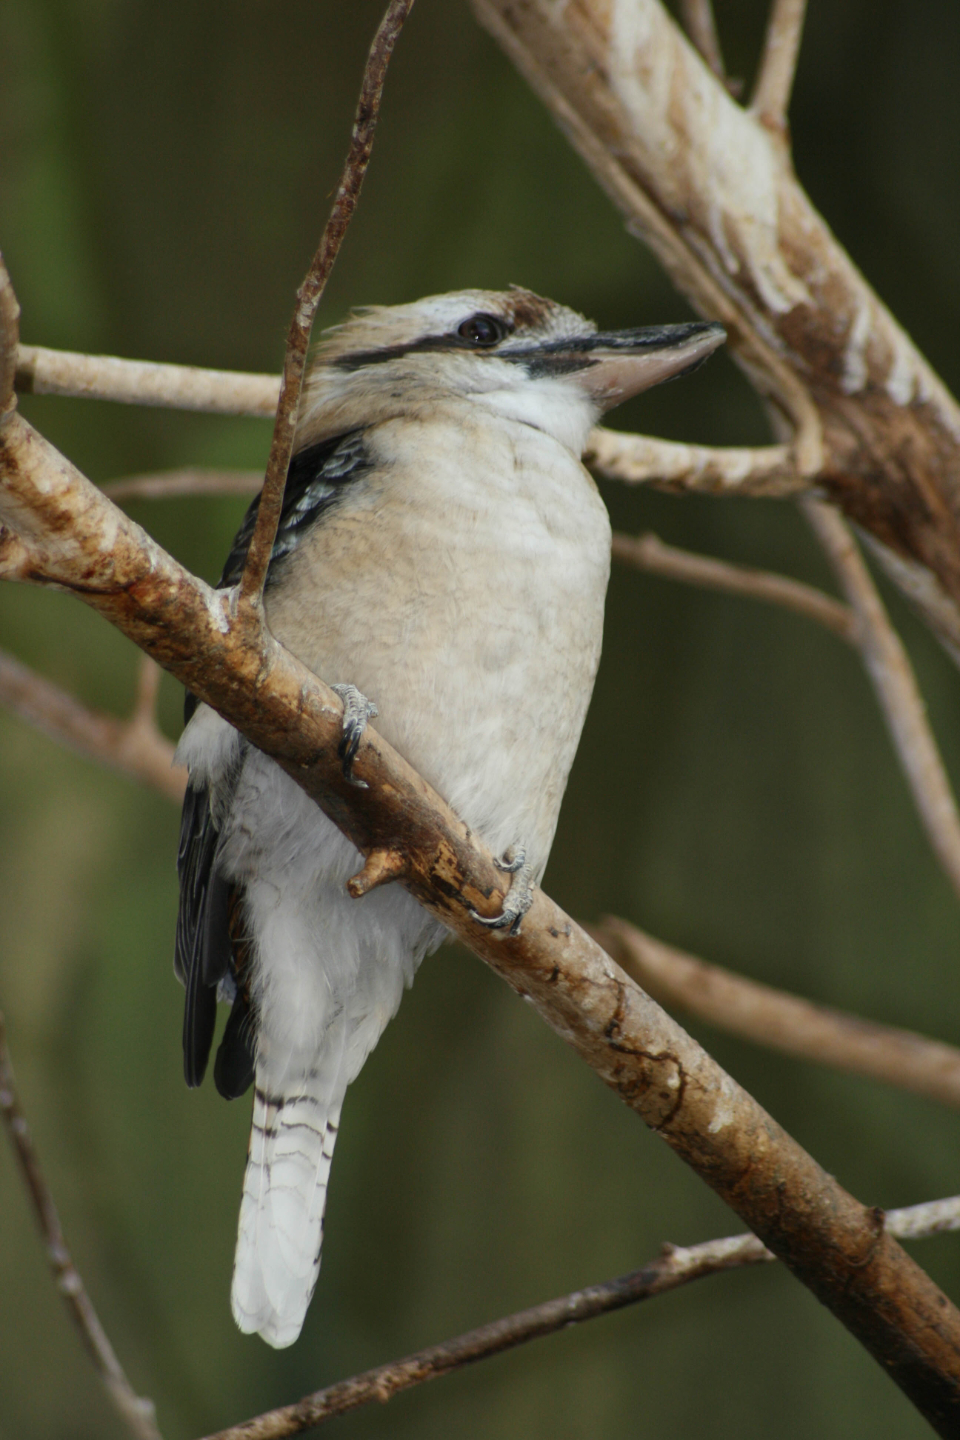 woodpecker bird wildlife perched branches tree animal nature beak feathers wings forest